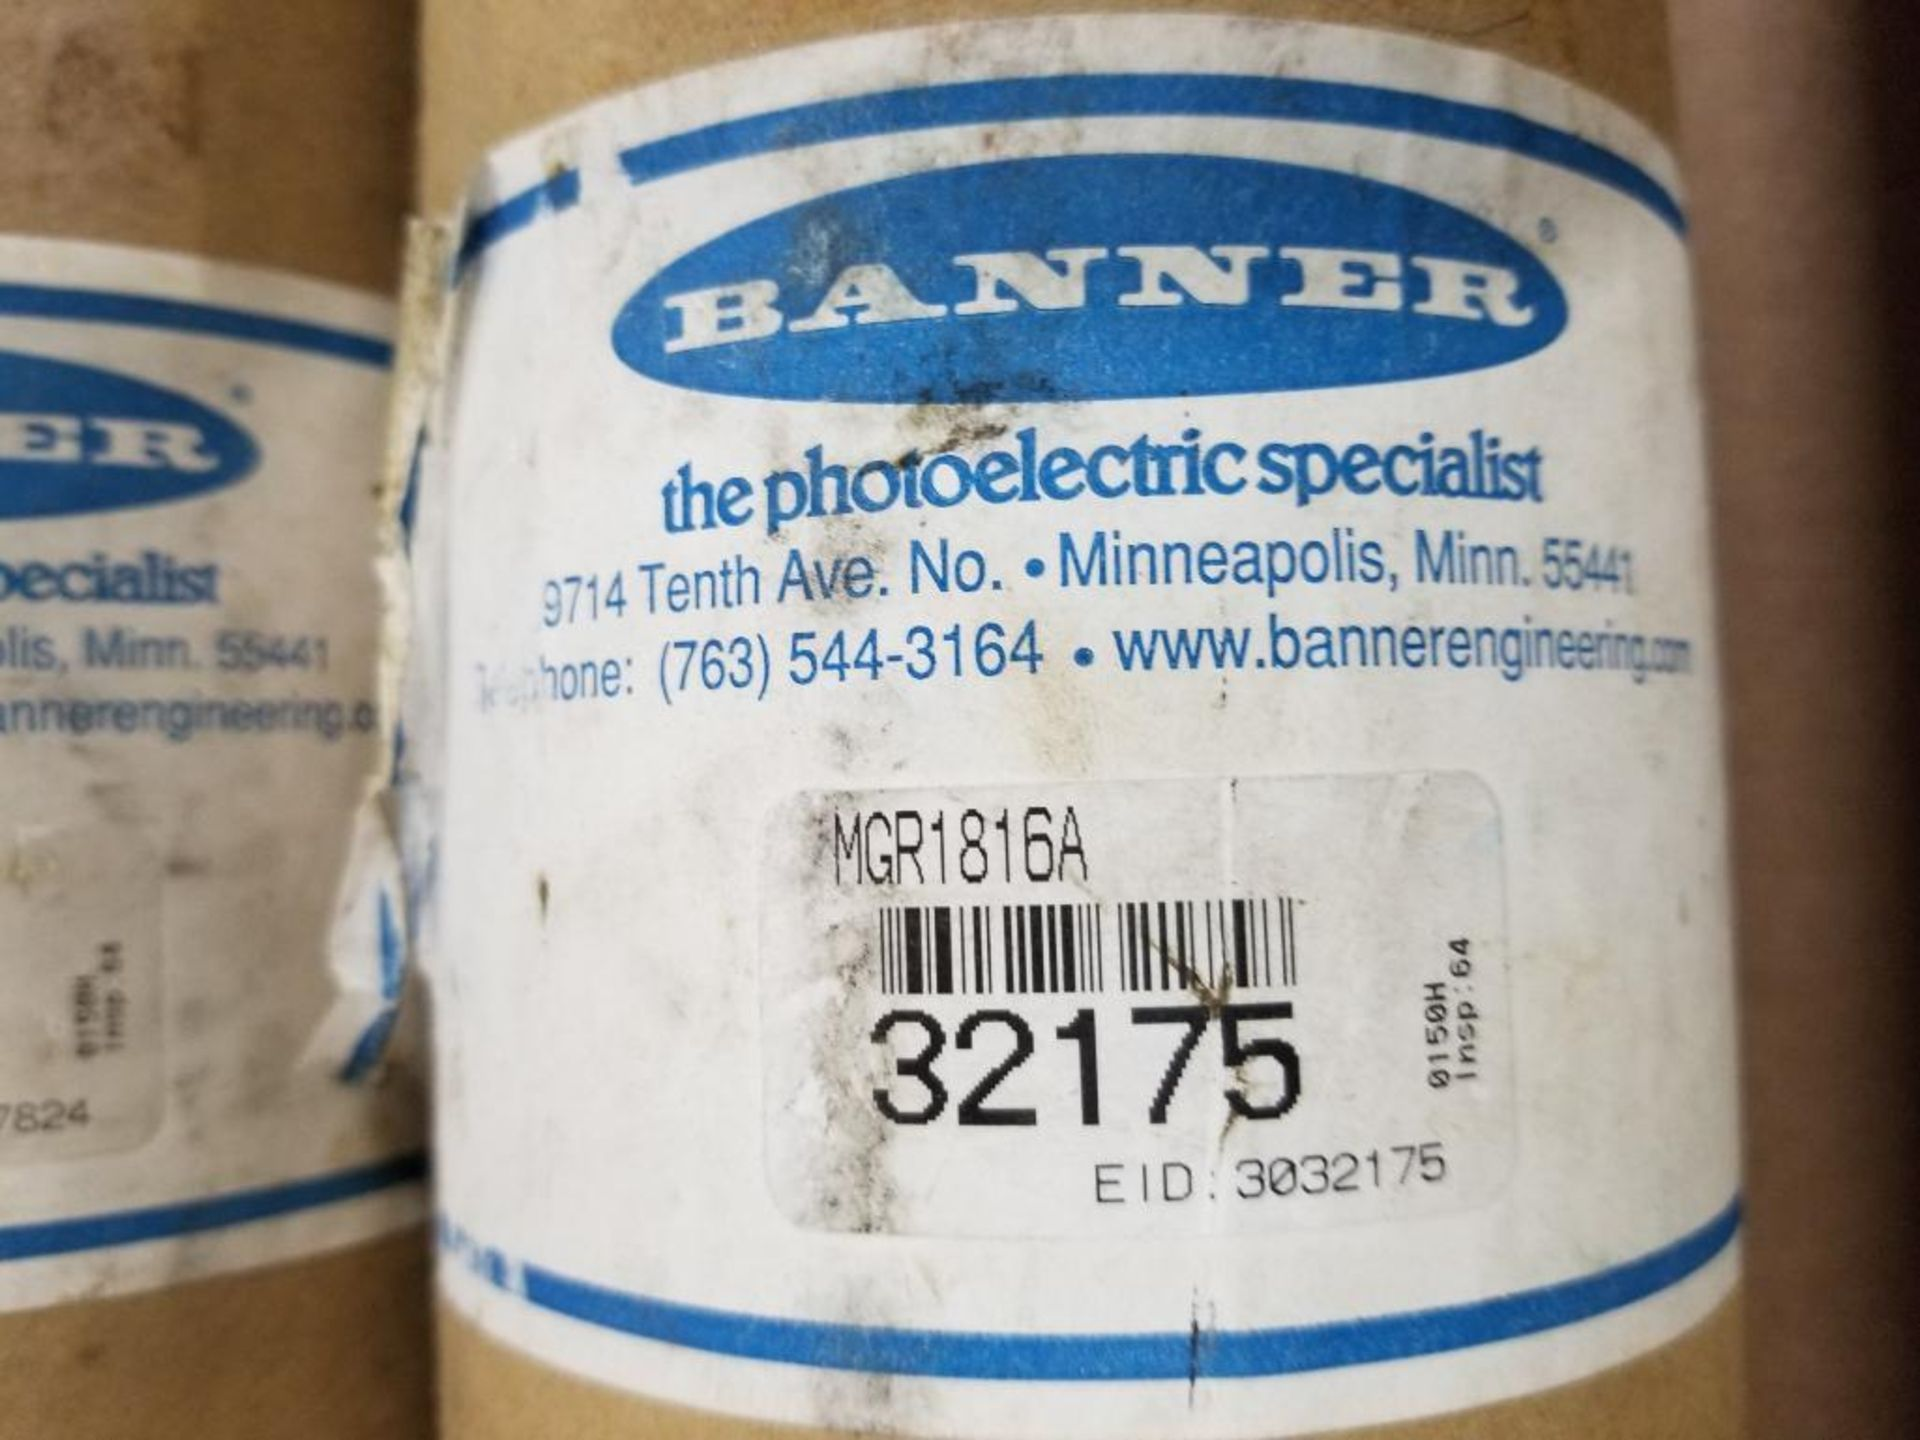 Banner Light curtain transmitter / receiver set. MGE1816A 27824, MGR1816A 32175. - Image 5 of 5